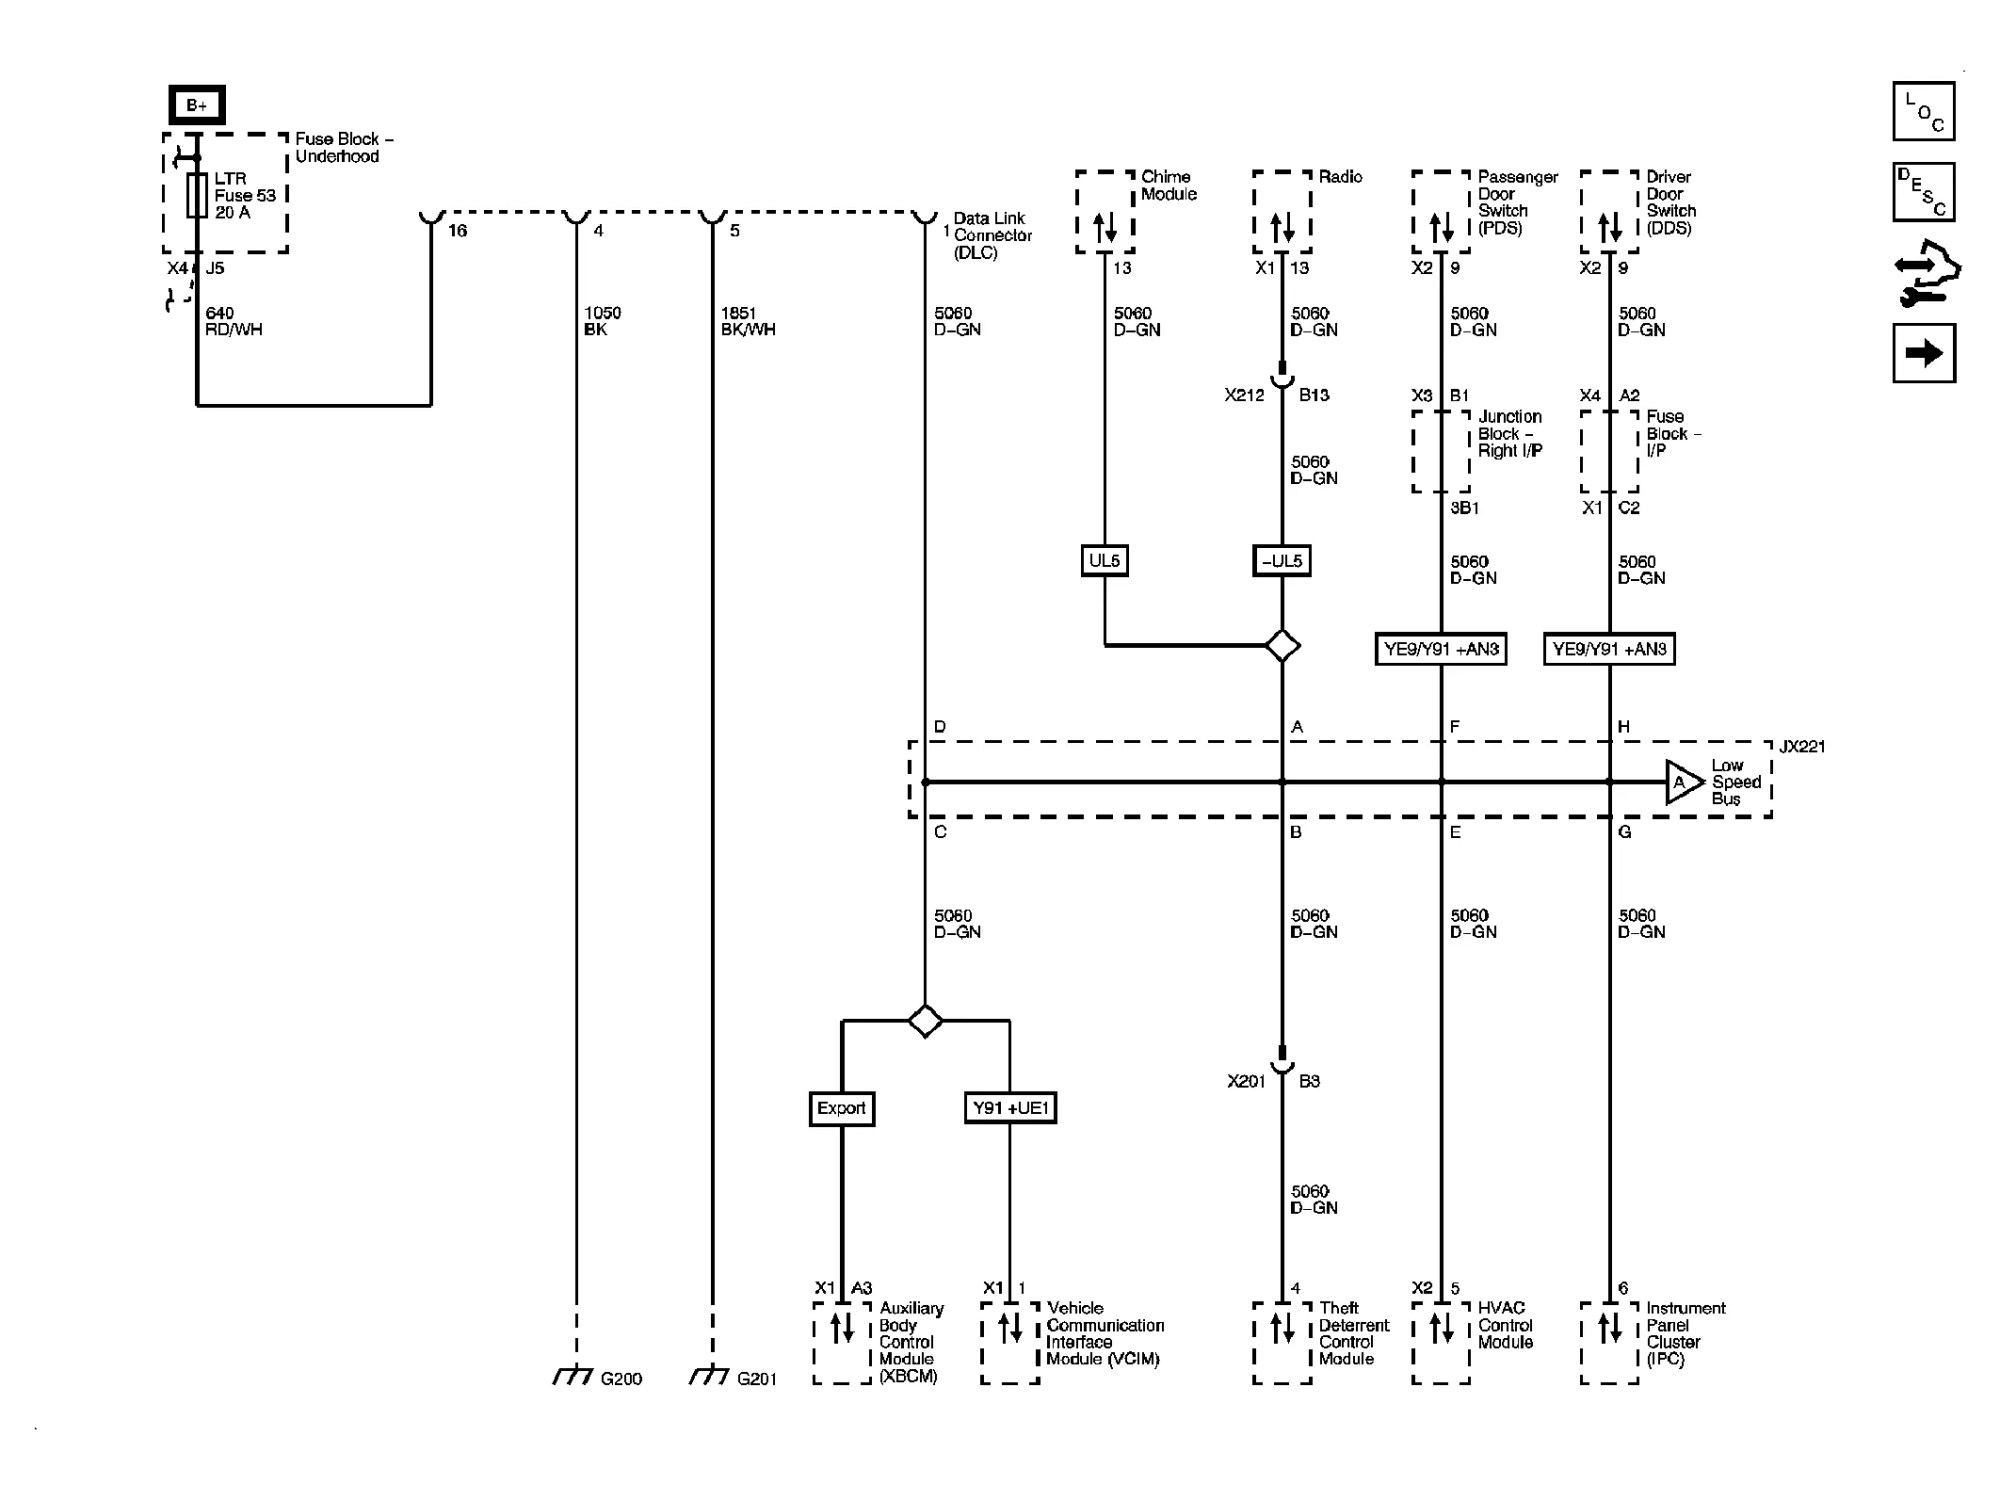 hight resolution of you ll also require detailed wiring diagrams for your specific vehicle for all modules on the canbus system which you can request at many auto parts